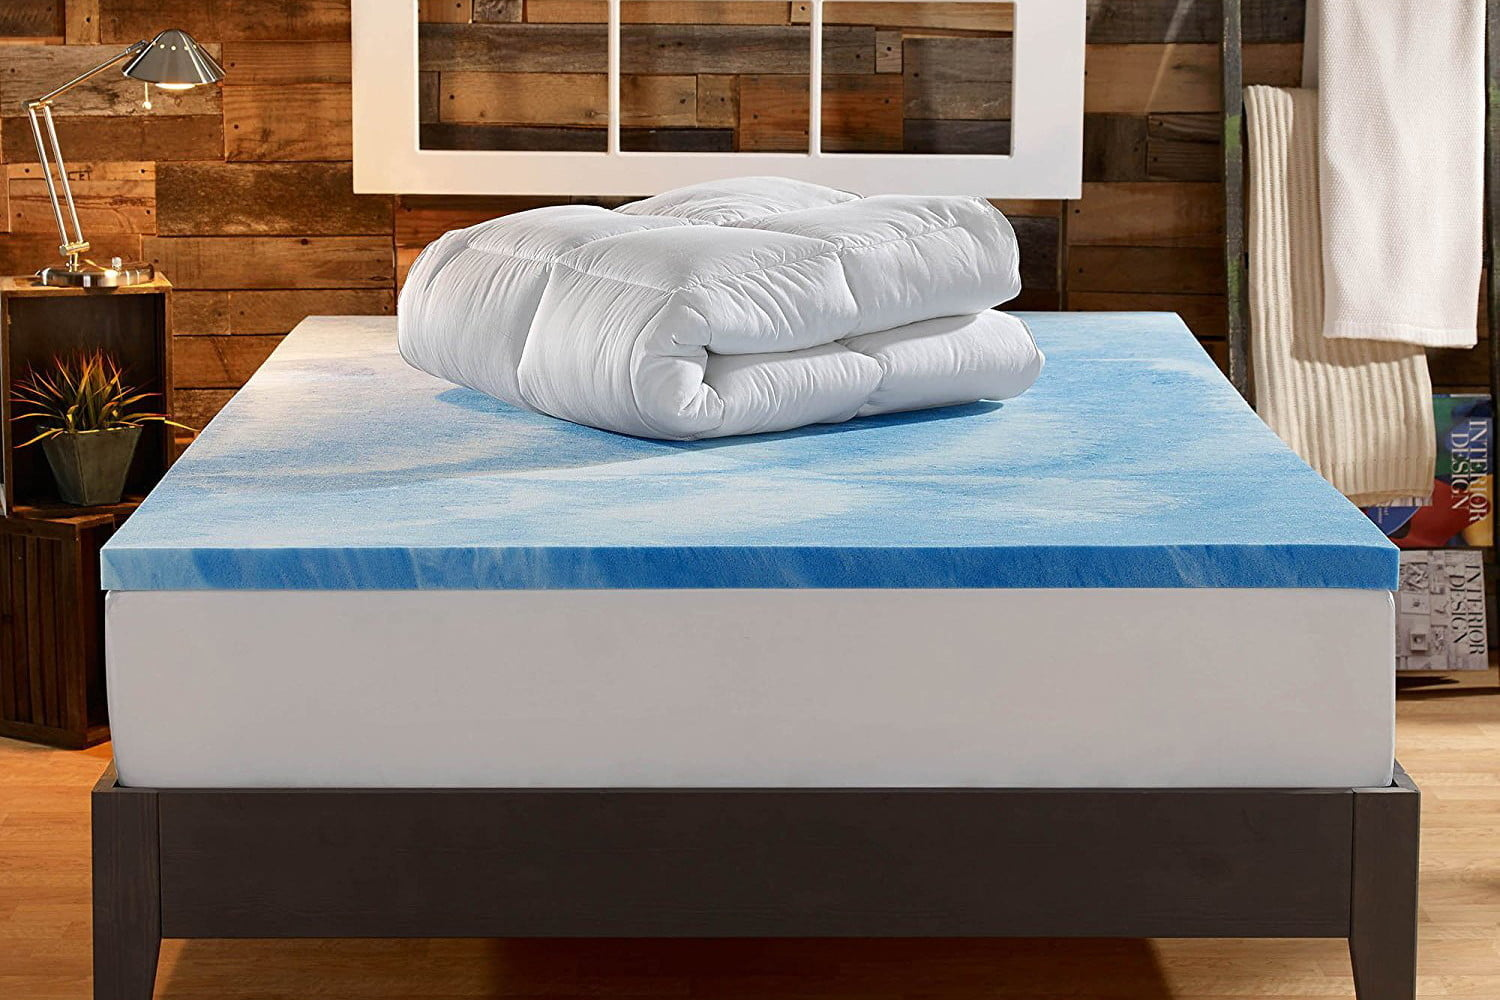 Memory Foam Mattress Too Firm The Best Memory Foam Mattress Toppers For A Better Night S Sleep